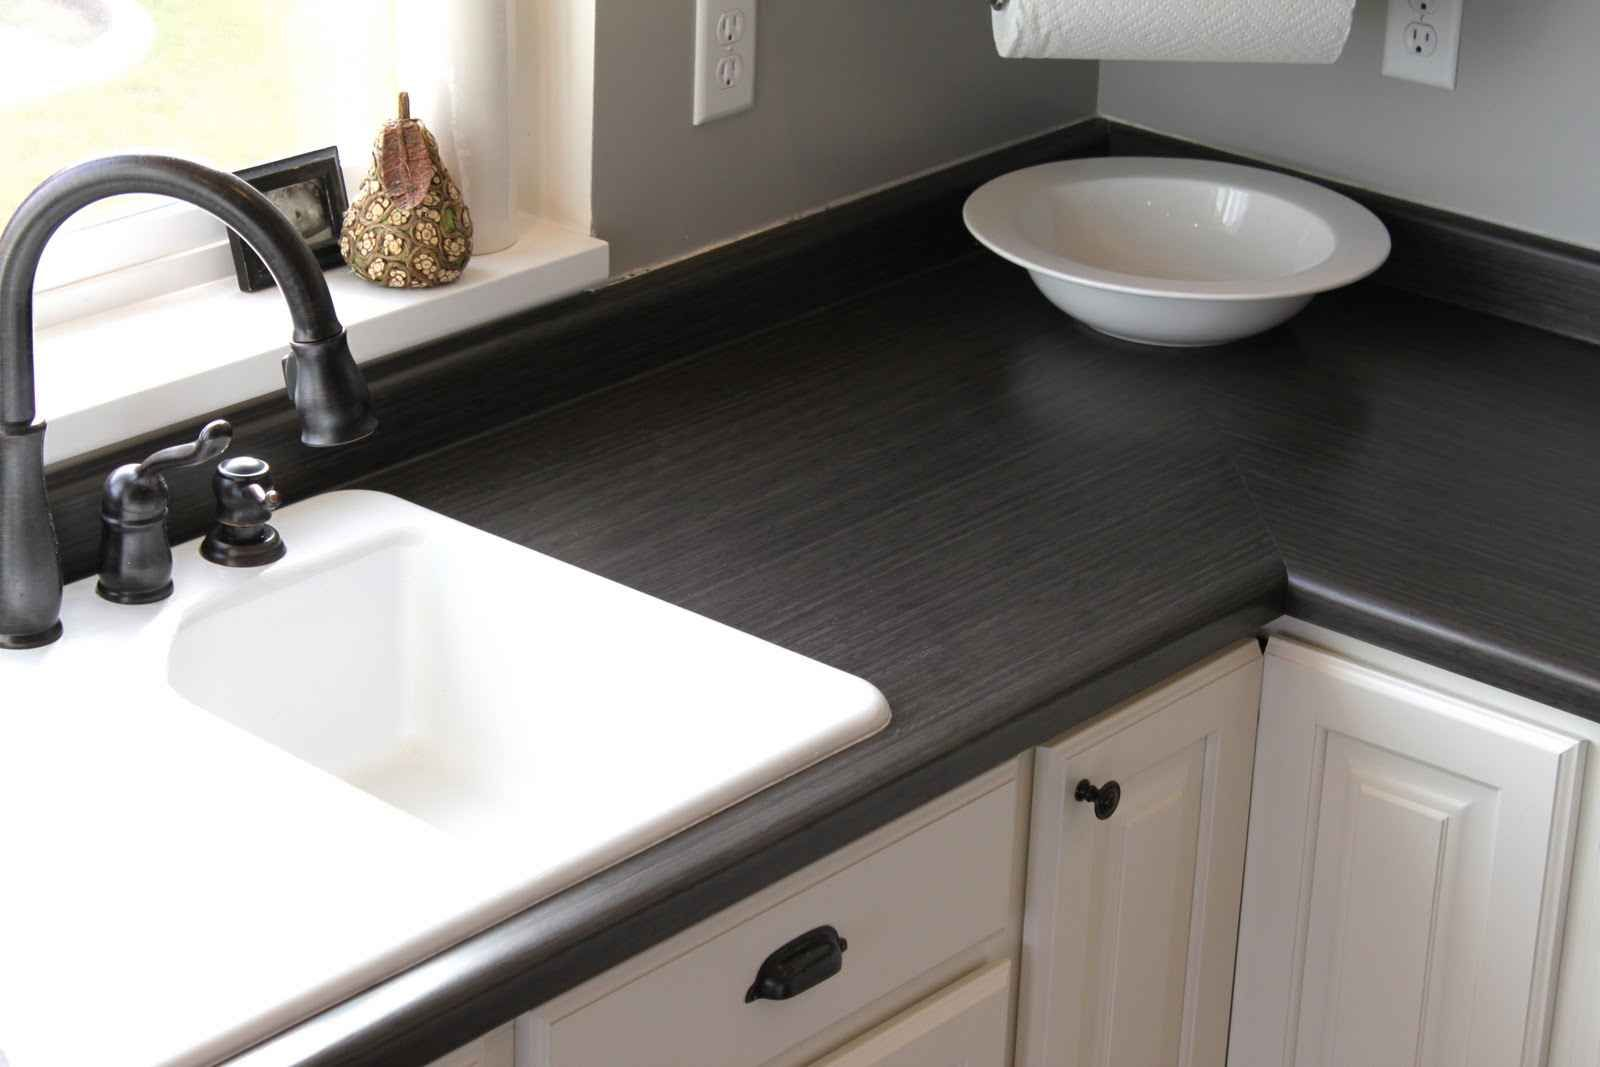 Asian Night Laminate Counter top | Inexpensive kitchen ...